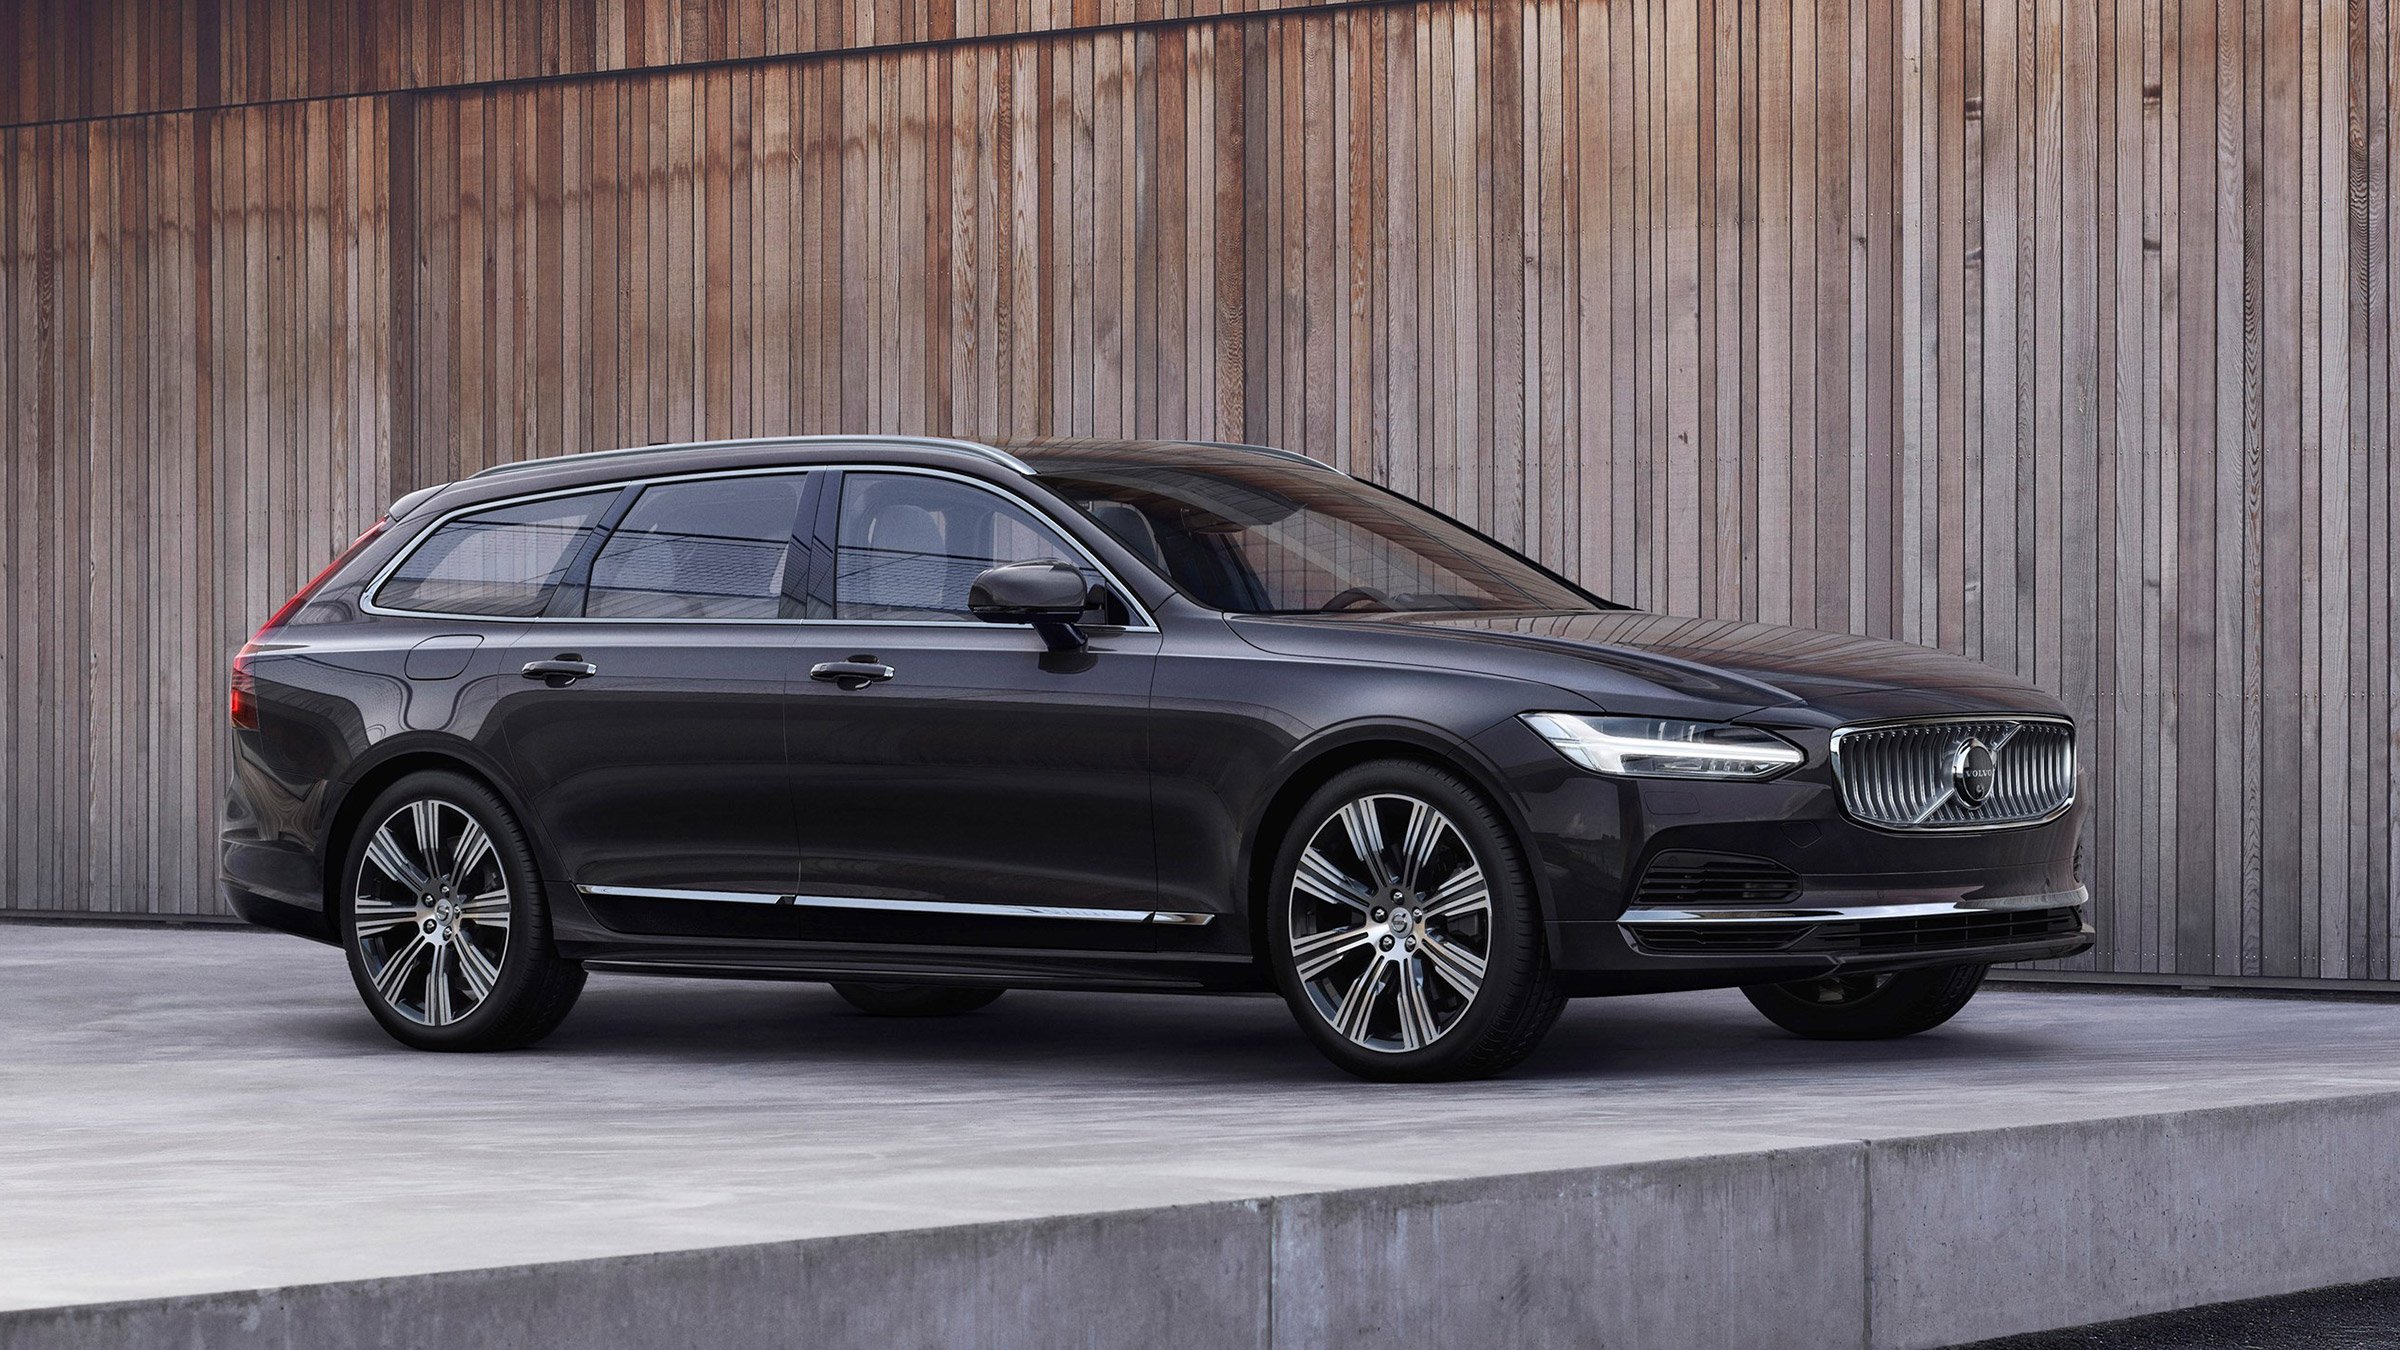 Volvo commences fitment of 112mph speed limiter on 2020 models